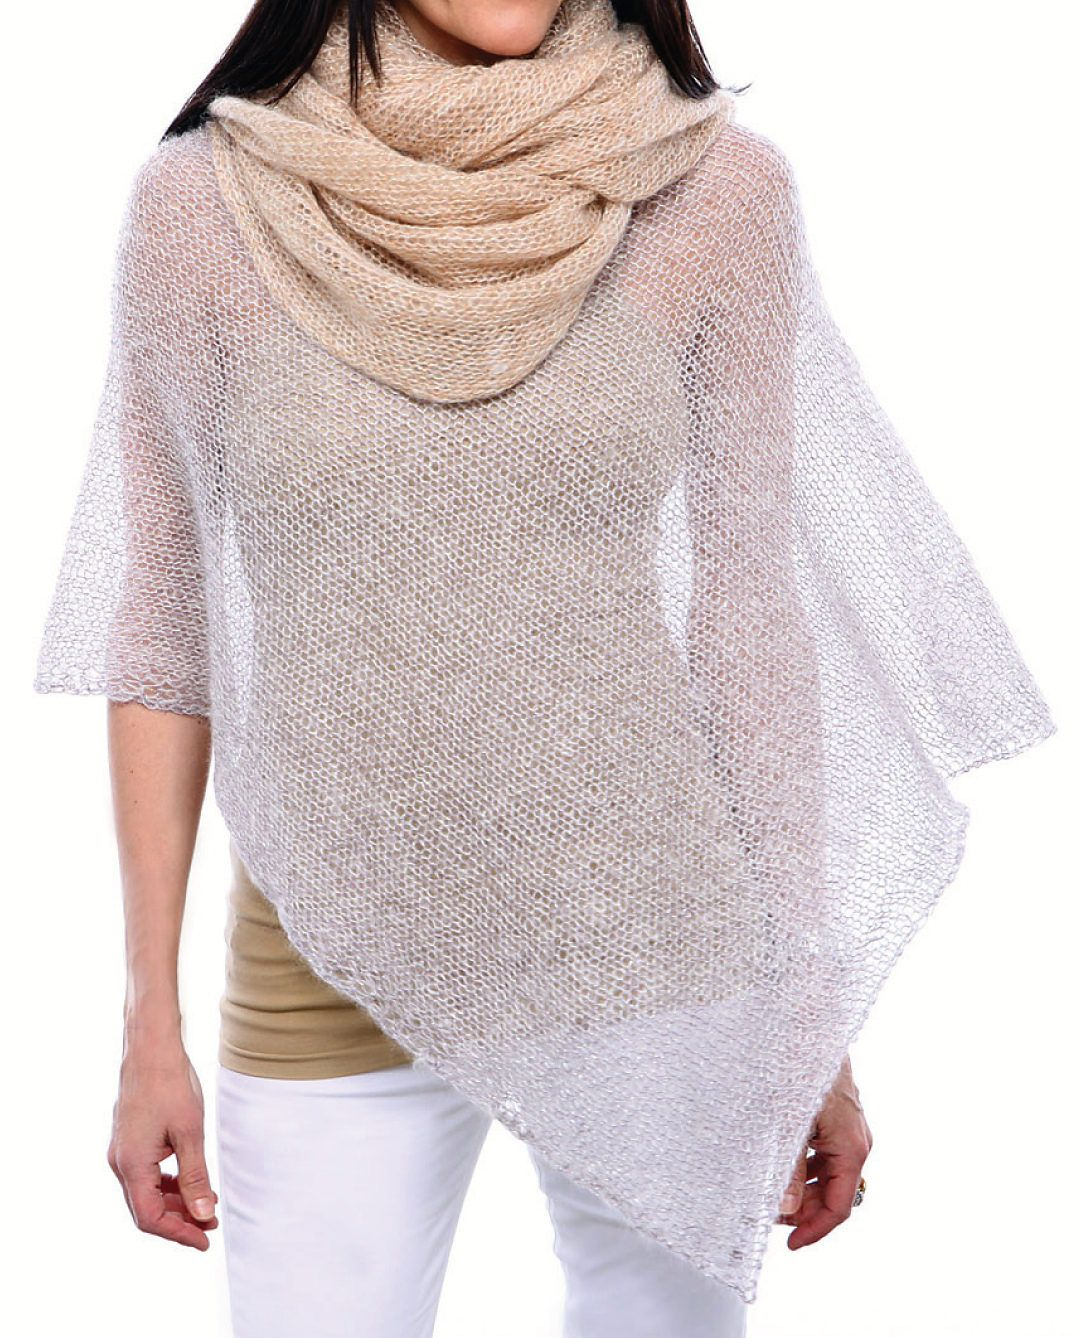 Free Knitting Pattern for Grace and Style Poncho - This very easy ...